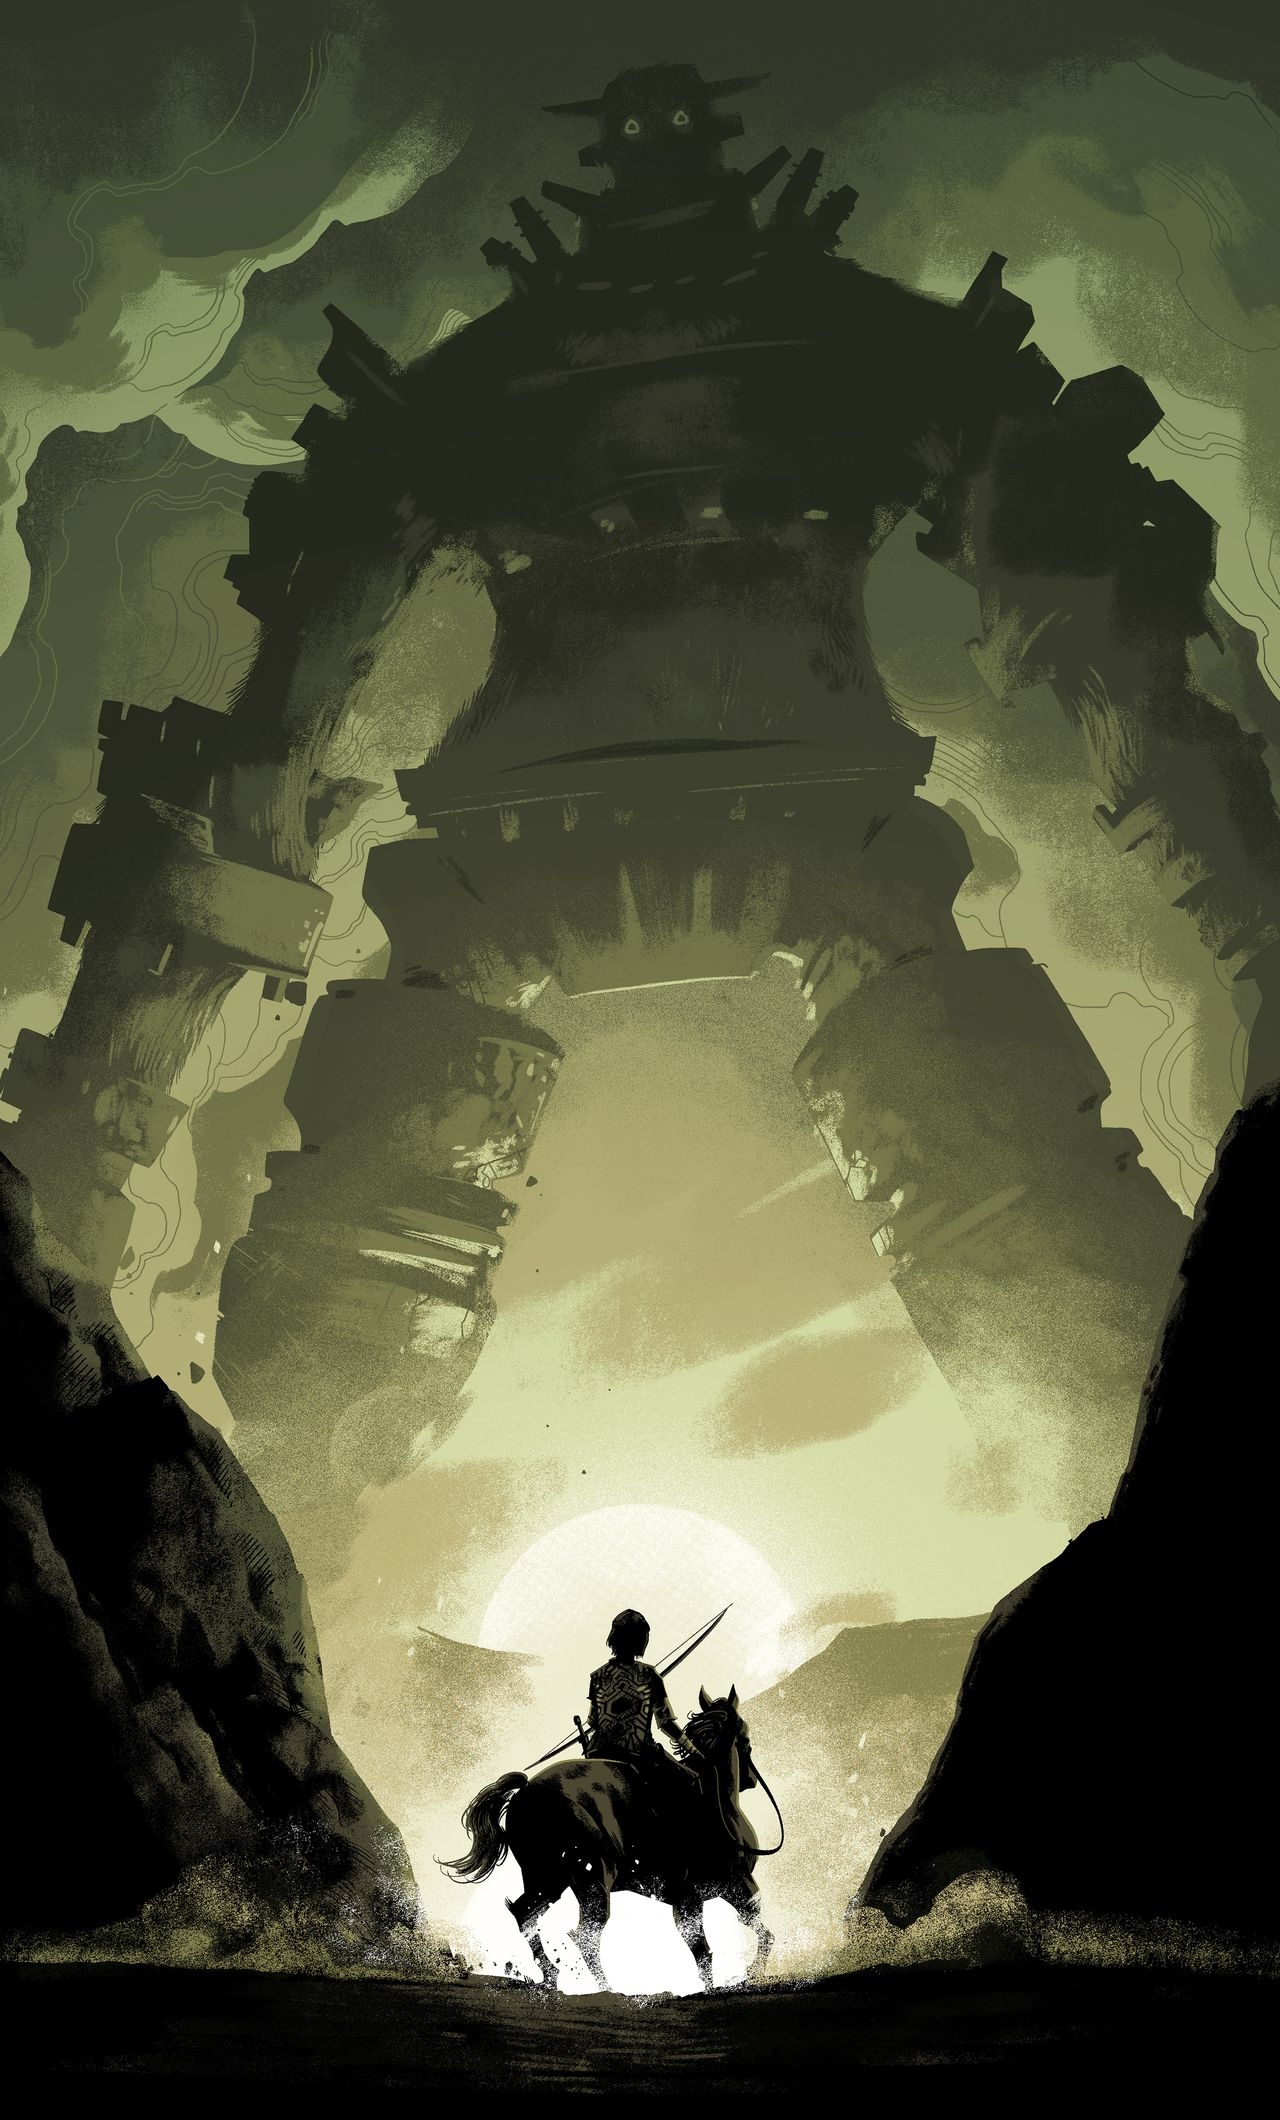 1280x2120 1280x2120 Shadow Of The Colossus 2018 iPhone 6+ HD 4k Wallpapers ...